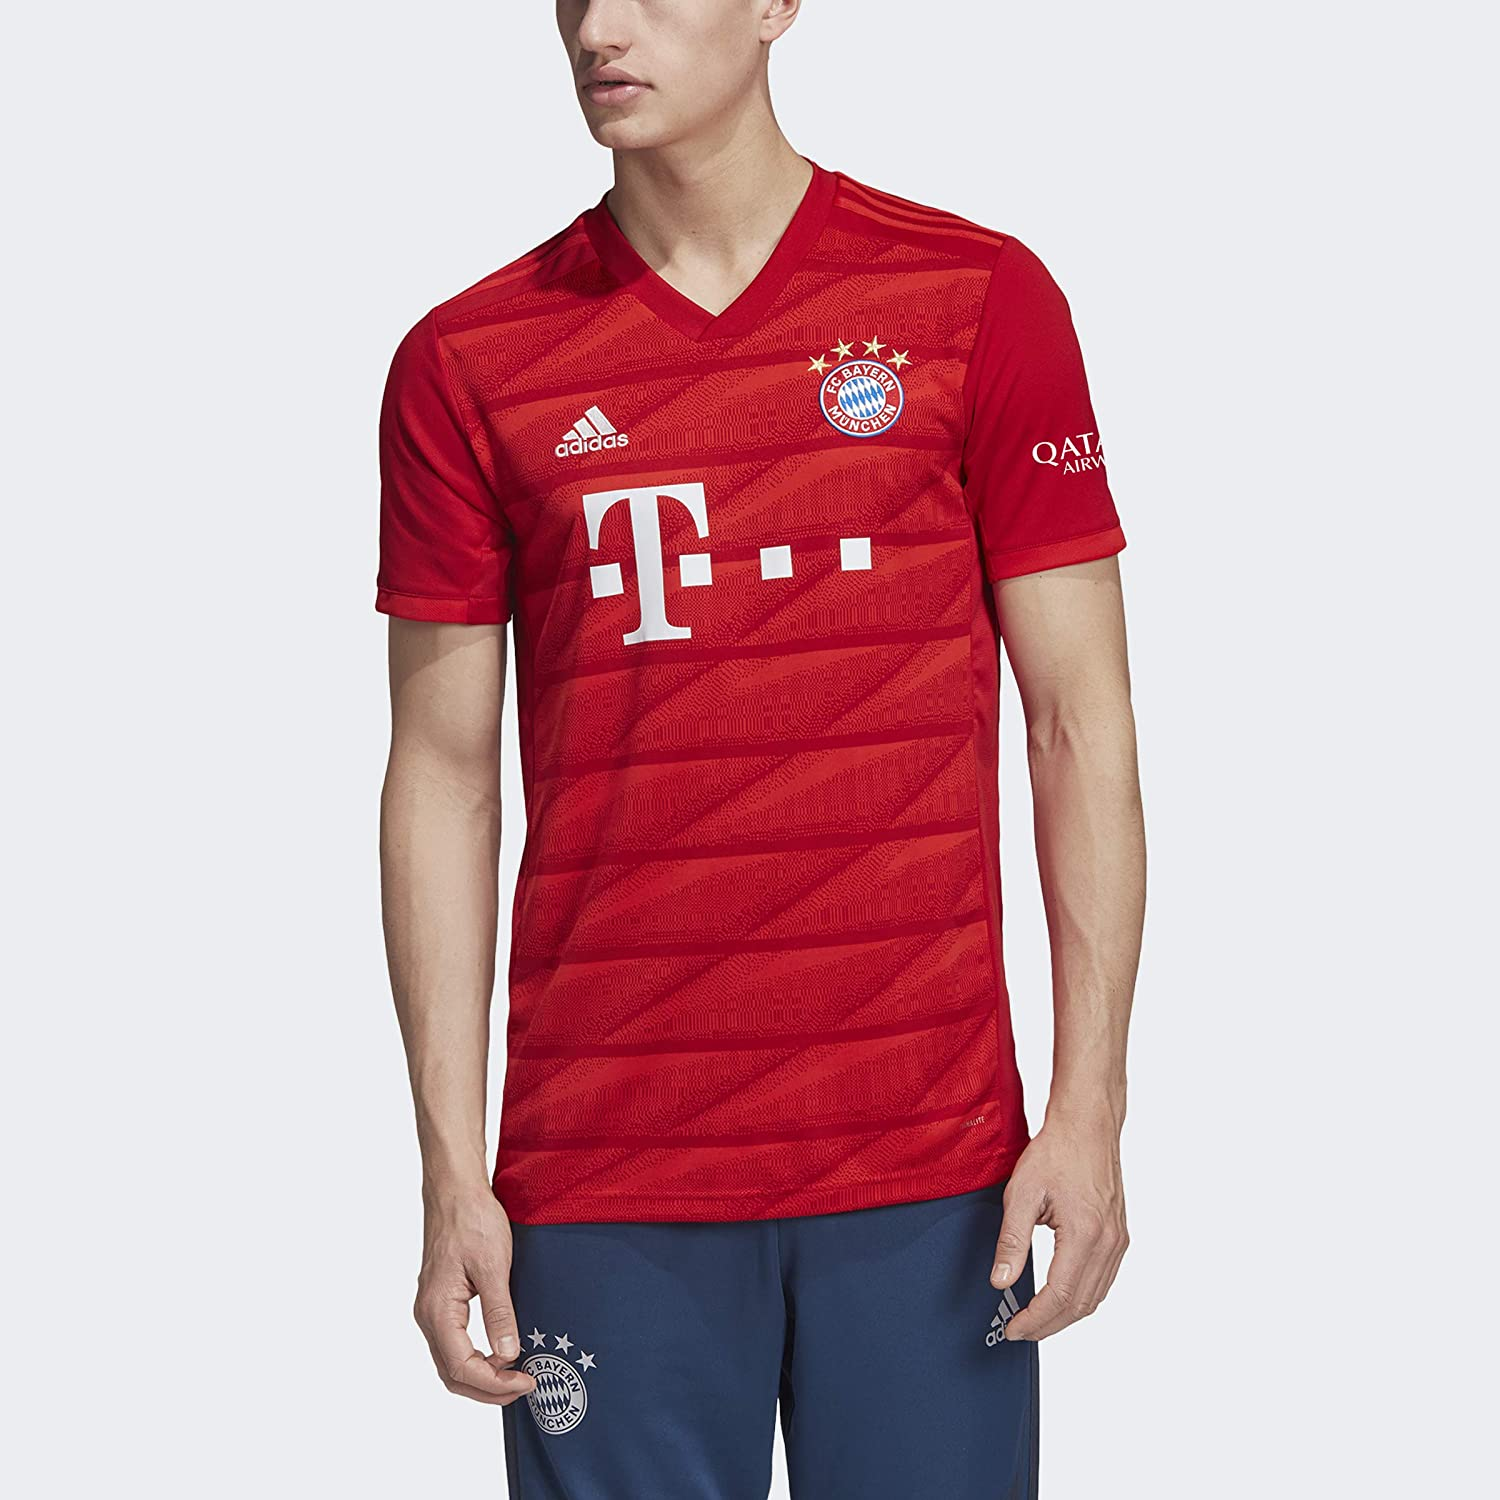 Amazon Com Adidas Fc Bayern Munich Adult Home Replica Jersey Dw7410 Clothing